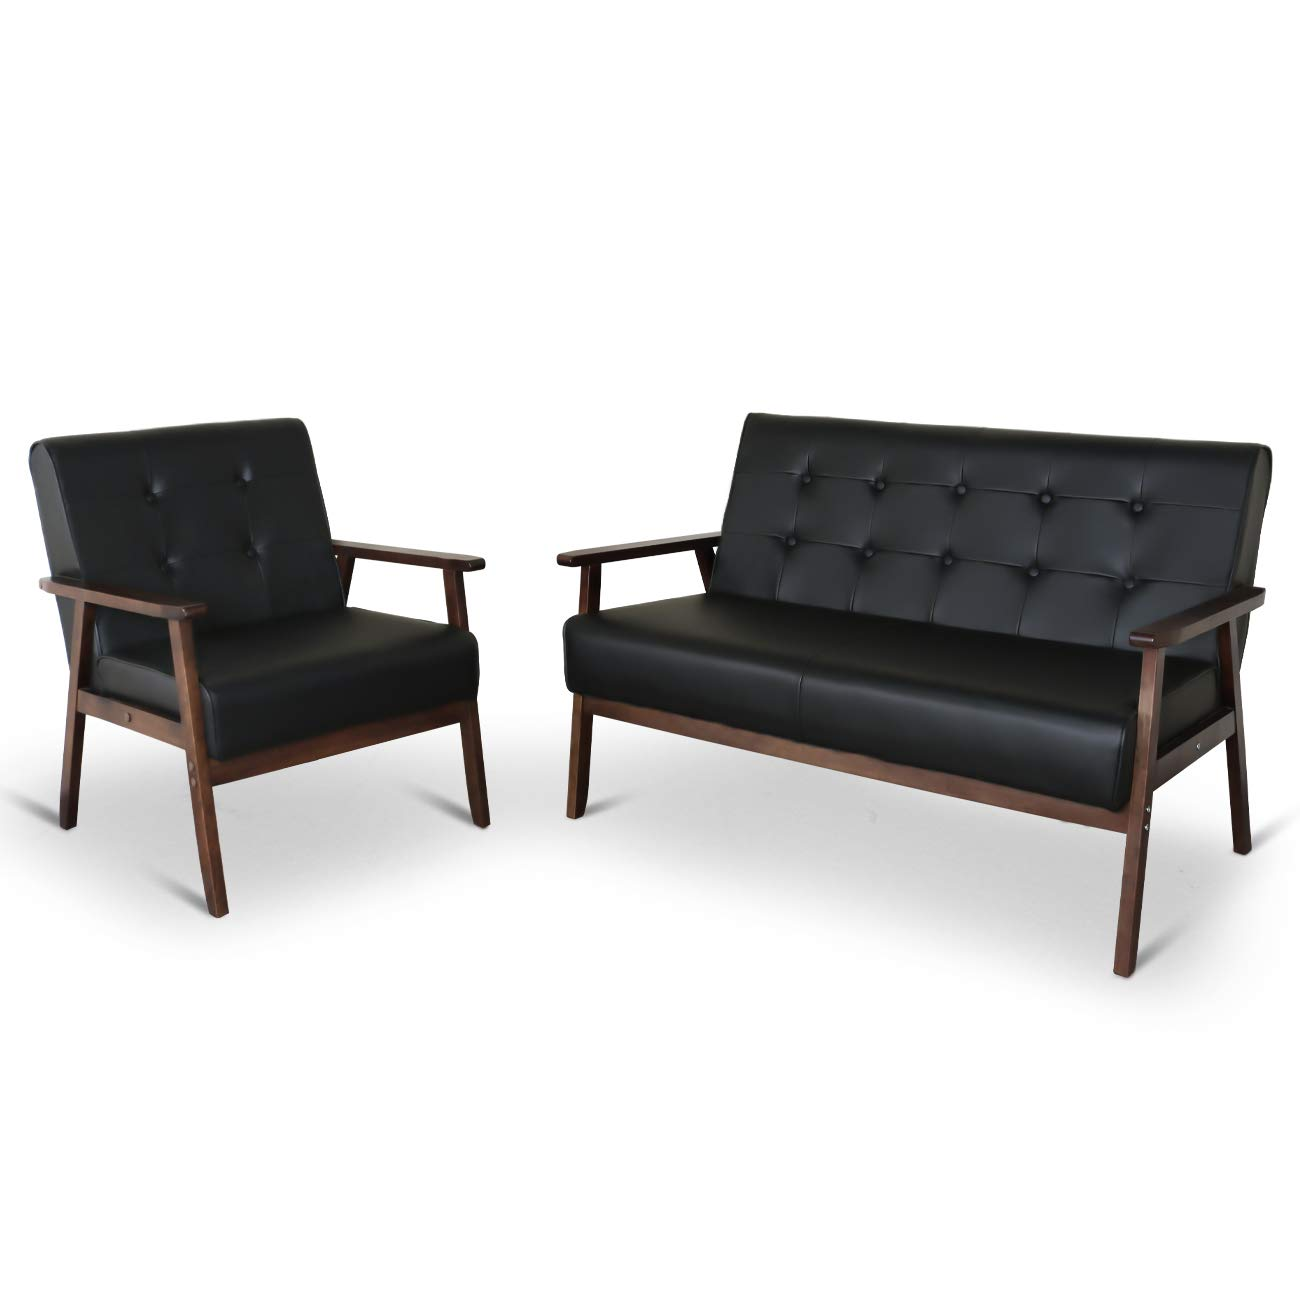 Mid-Century Retro Modern Living Room Sofa Set with Loveseat and Seating Sofa Chair, Couch and Lounge Chairs by JIASTING